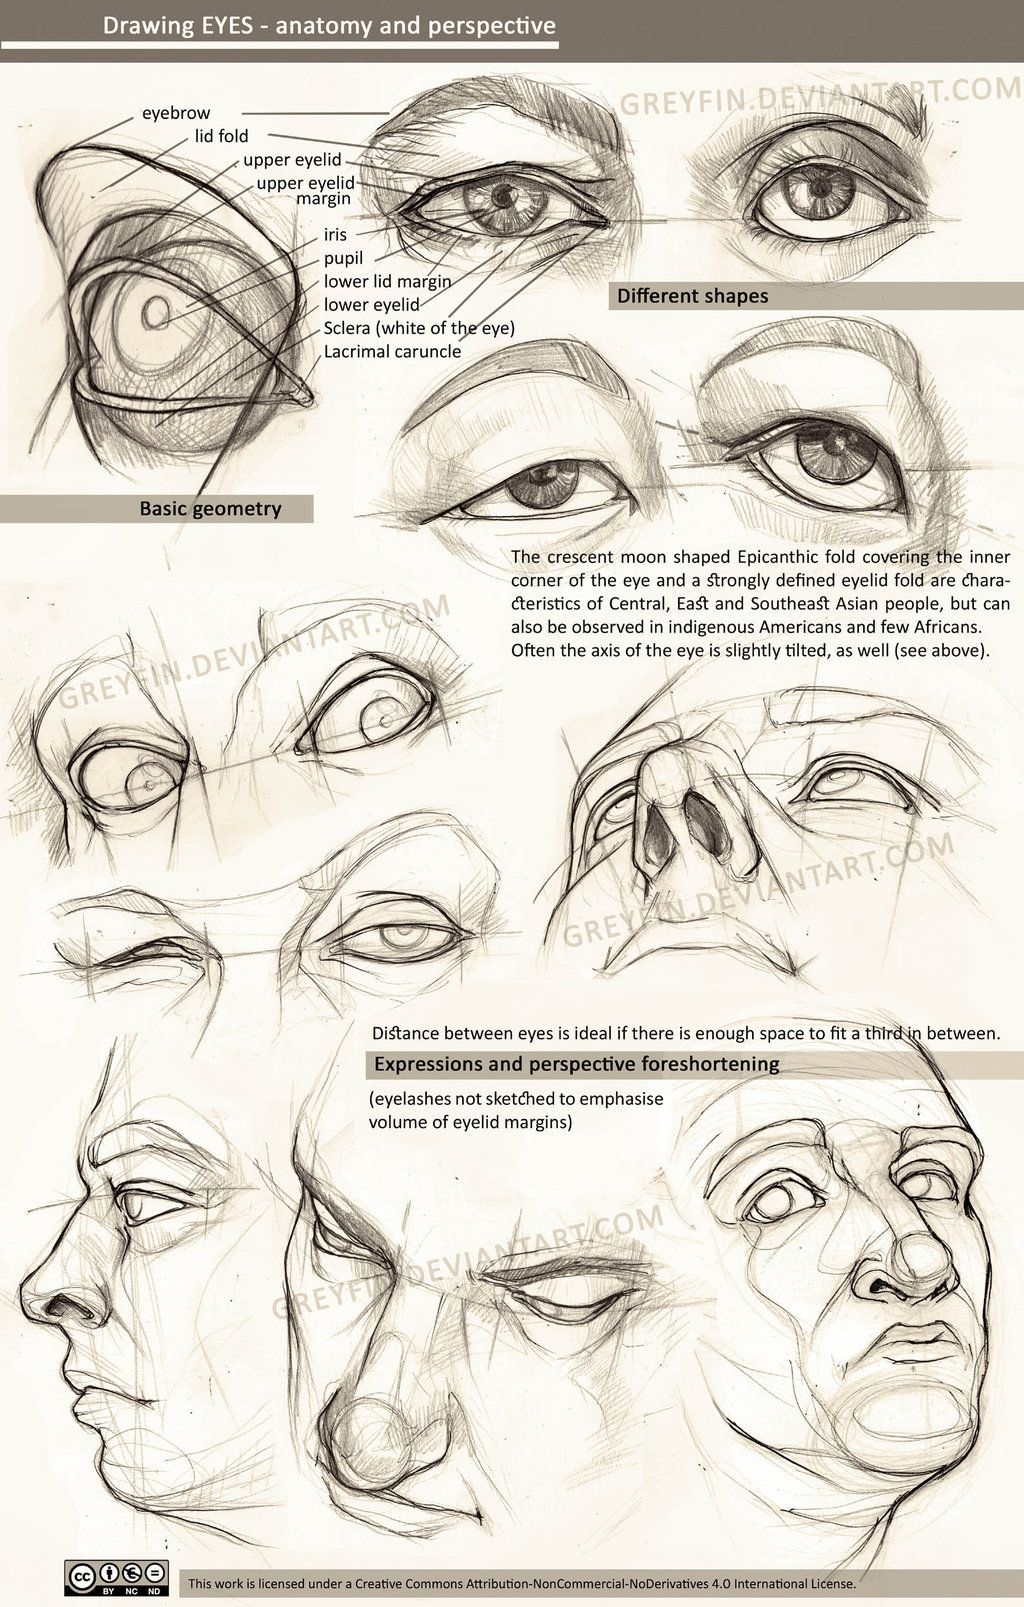 small resolution of drawing eyes anatomy and perspective by greyfin